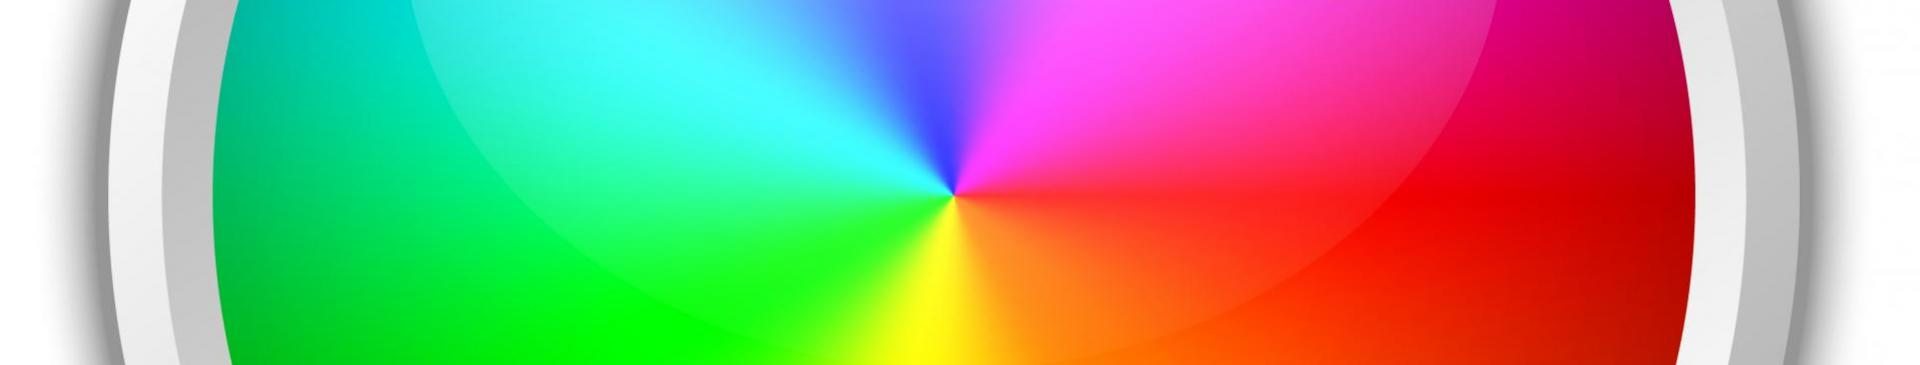 Working with color space and color management